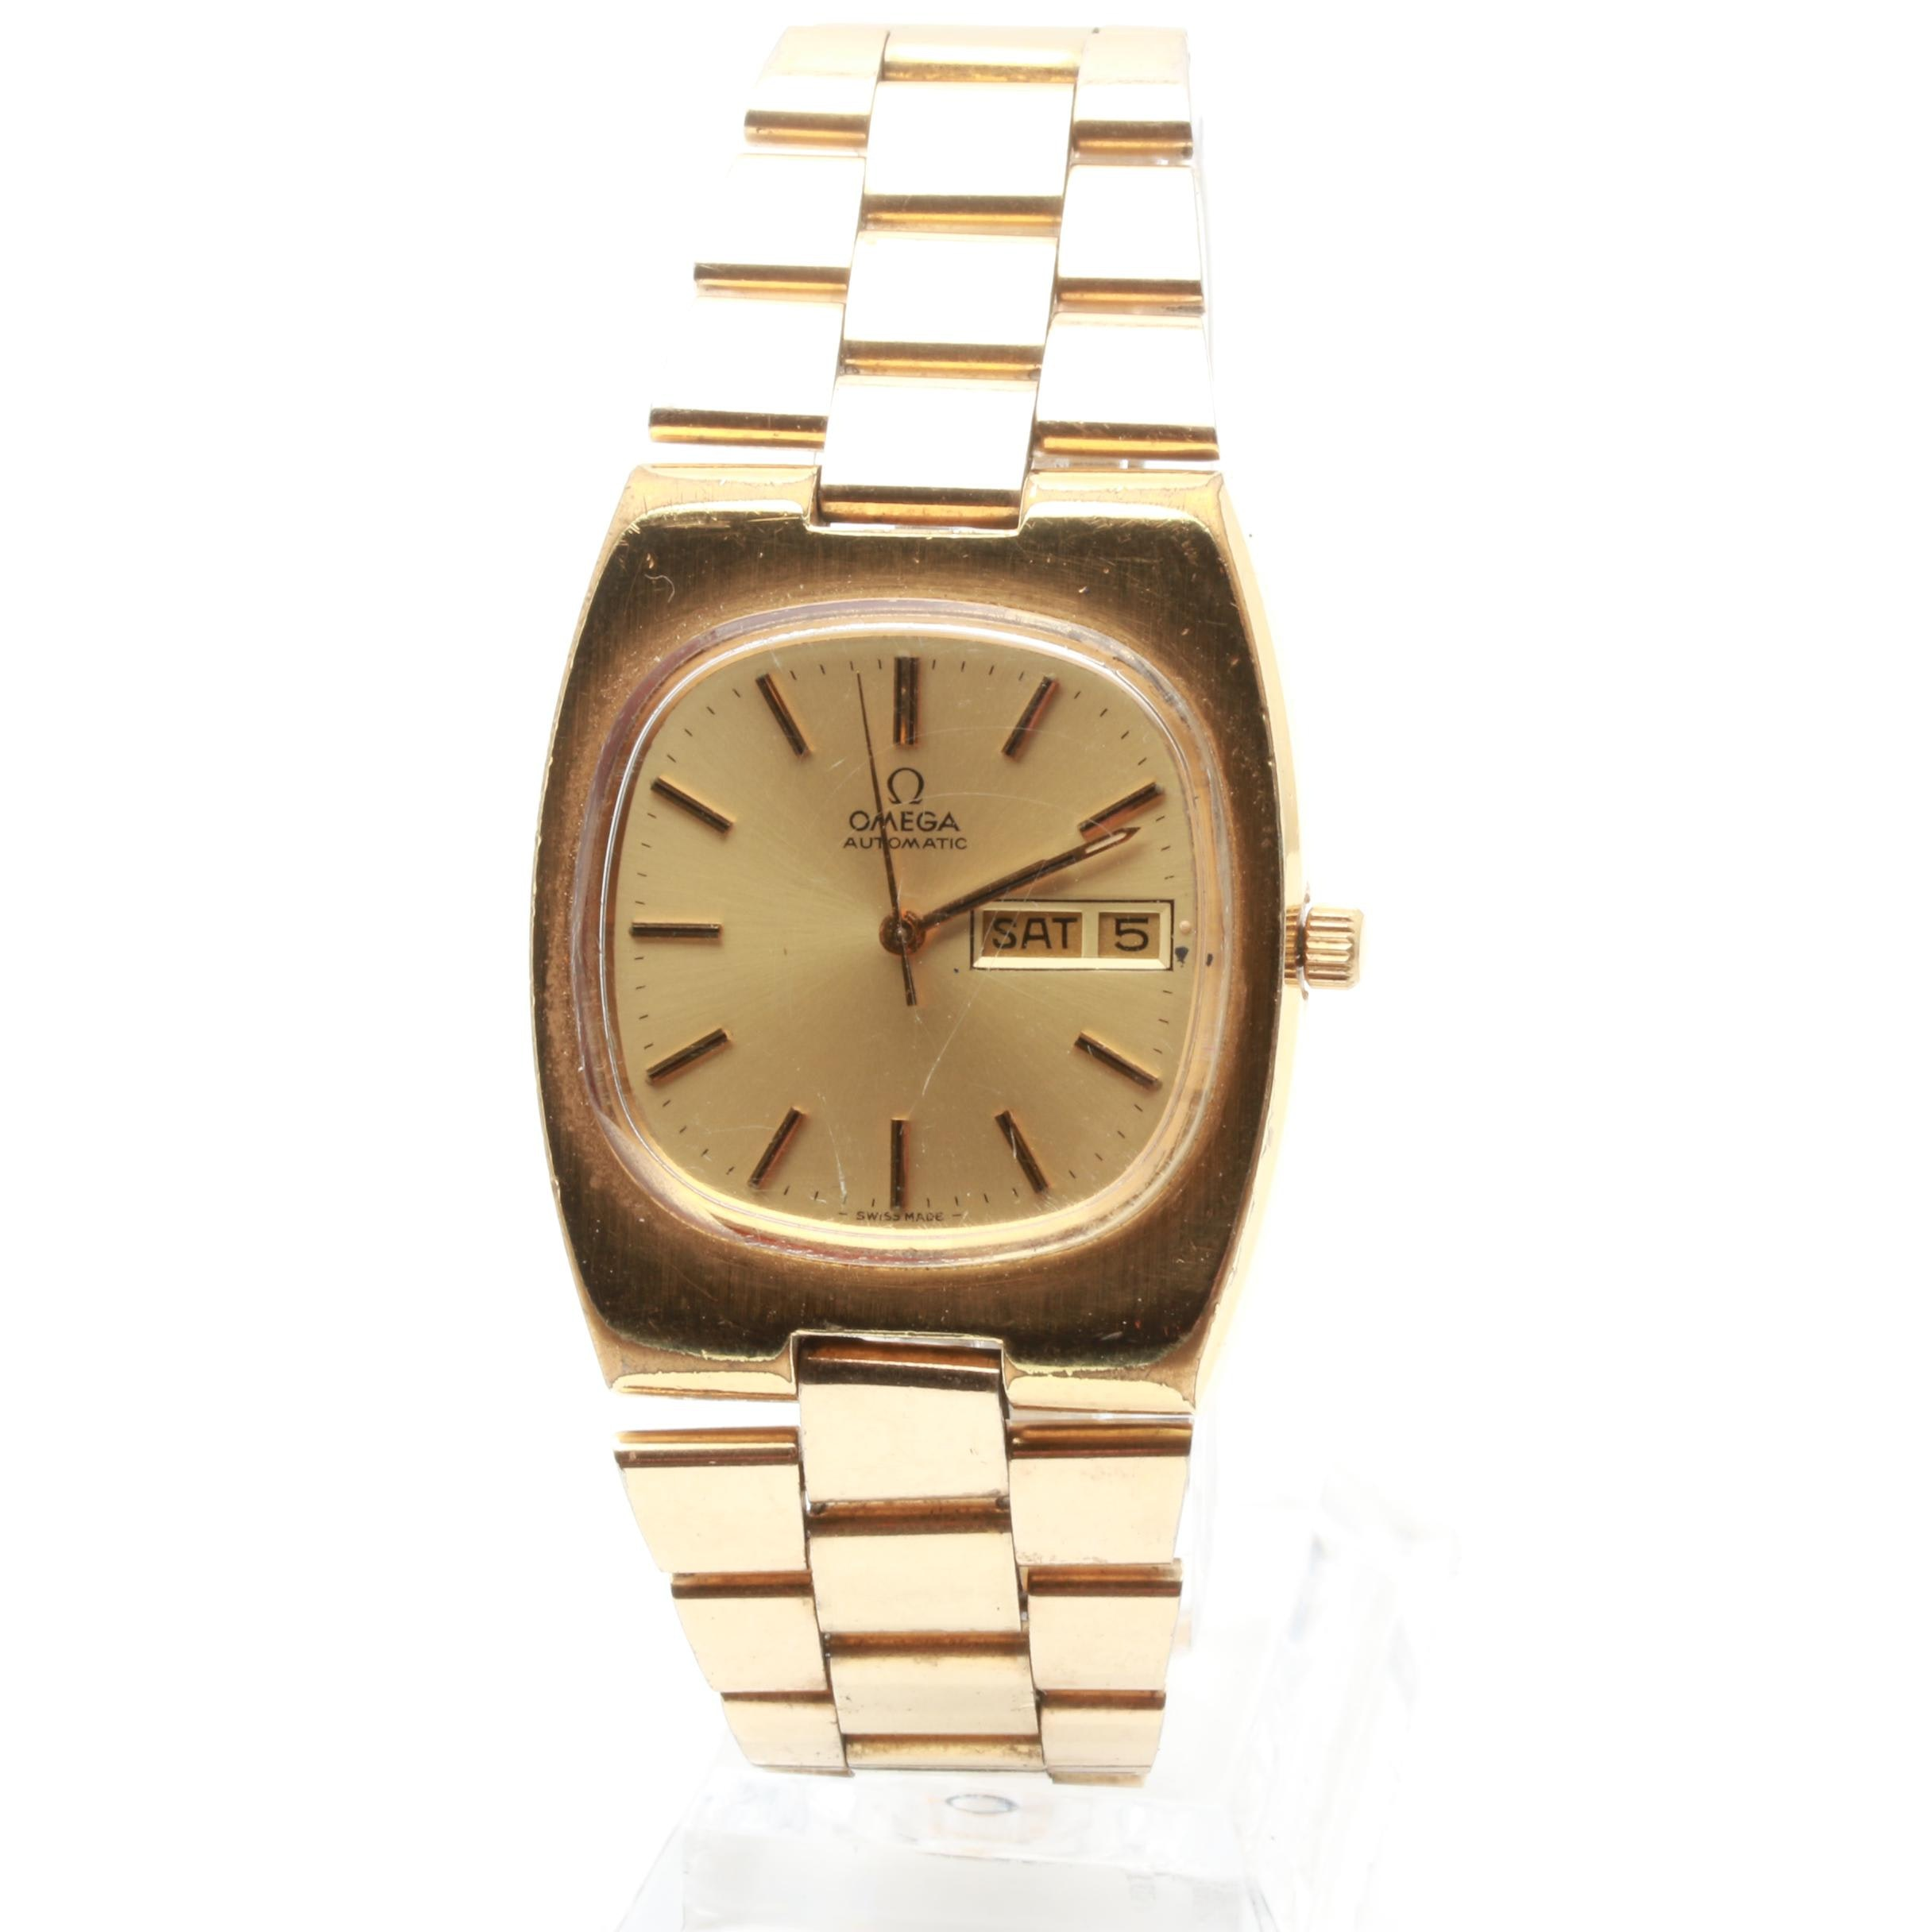 Omega 20 Micron Plated Stainless Steel Wristwatch with Date Window